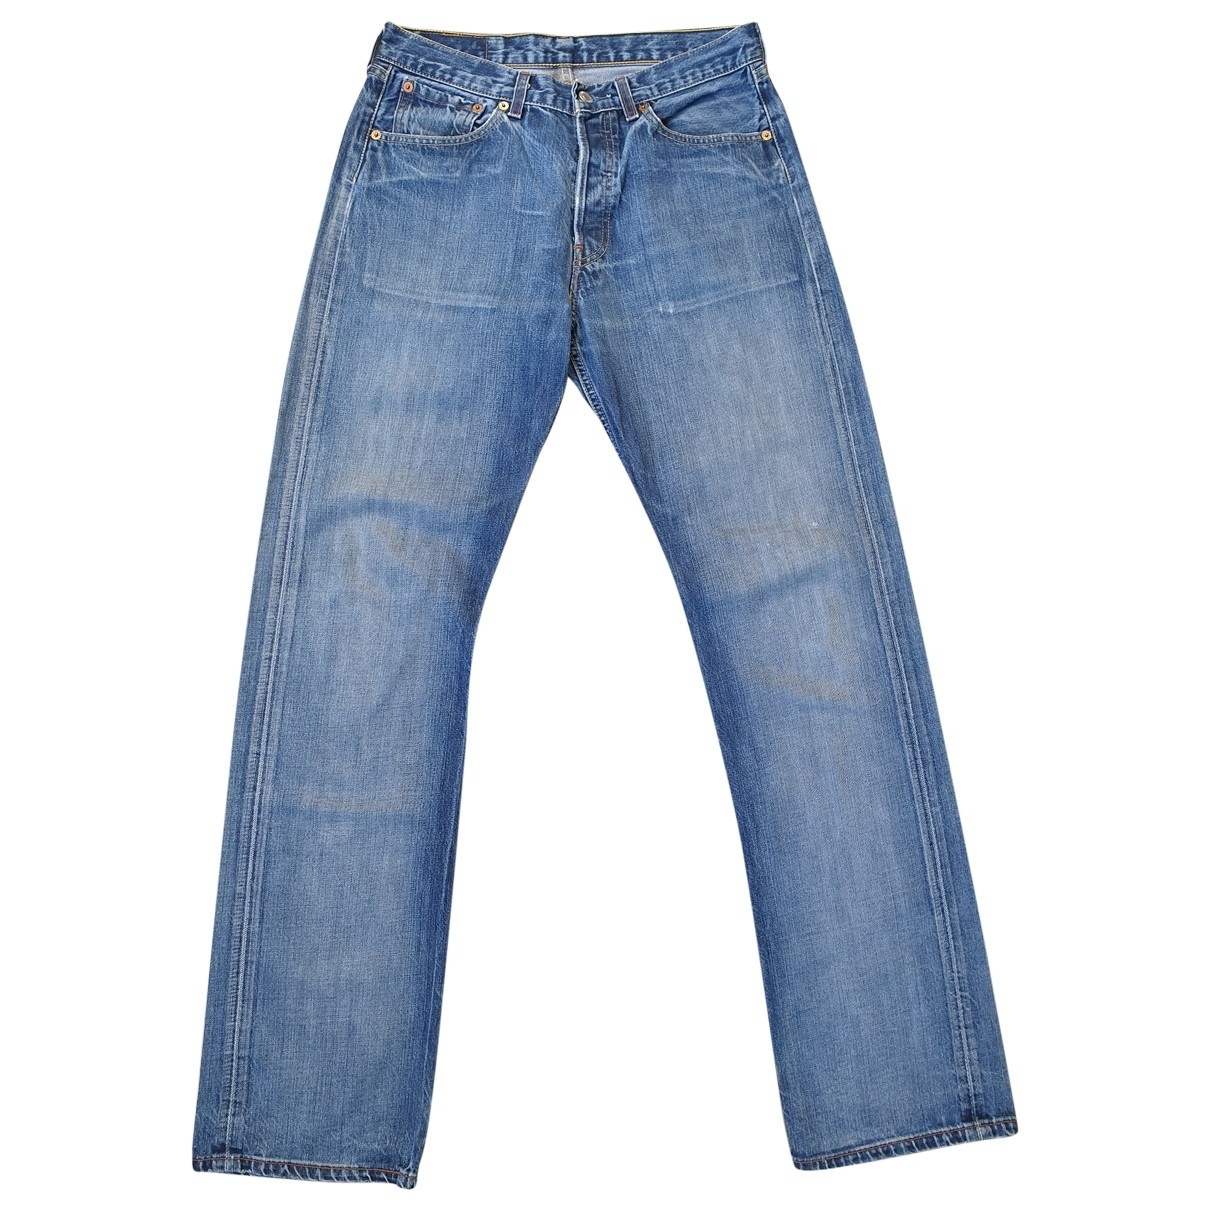 Levi's 501 Blue Denim - Jeans Jeans for Women 31 US